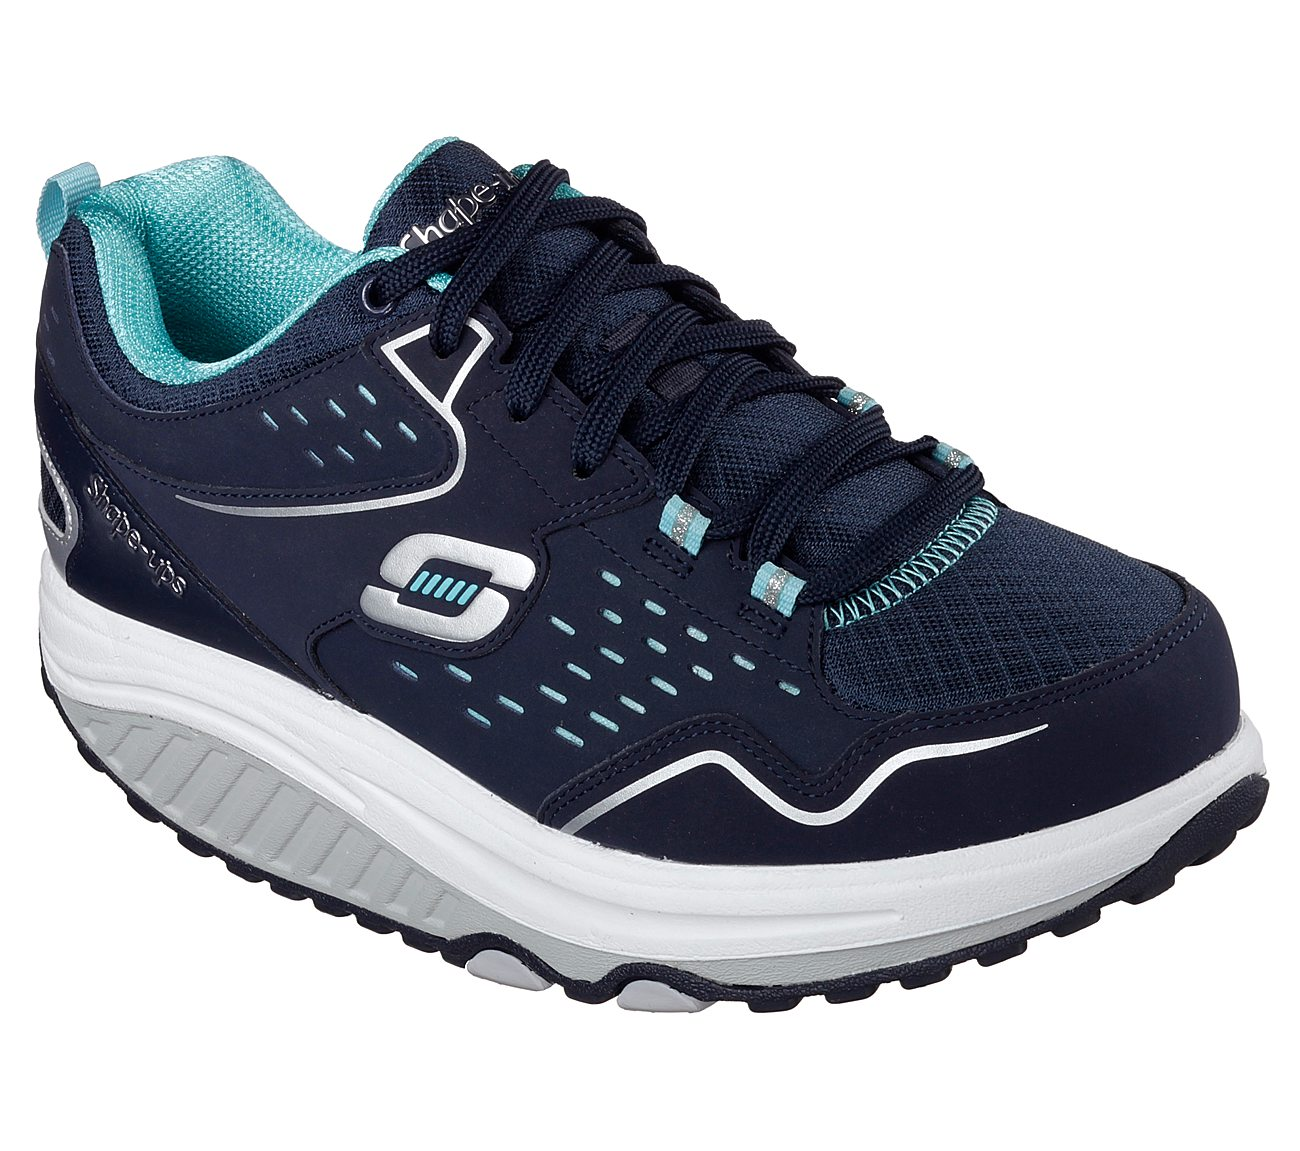 WOMENS LADIES SKECHERS SHAPE UPS BLUE